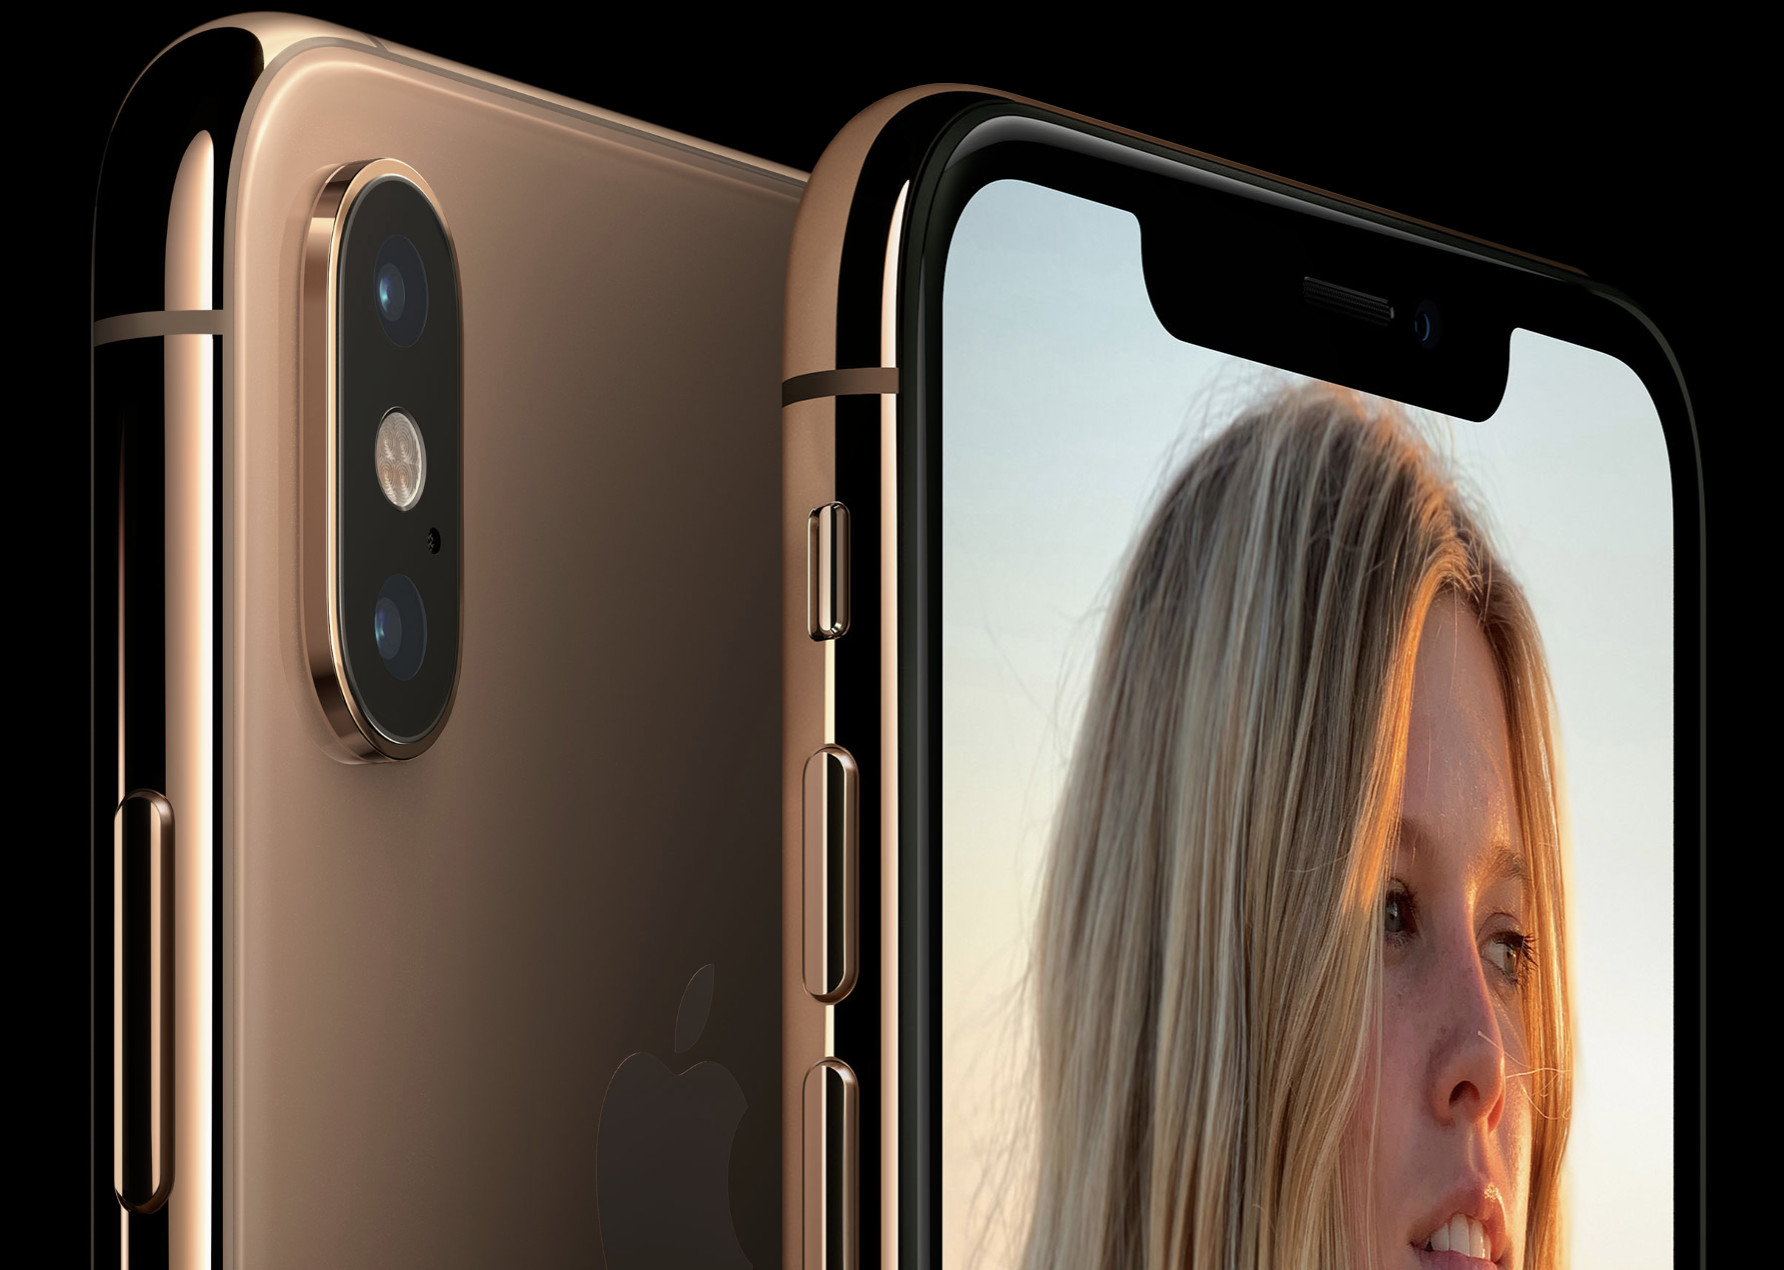 IPhone XS, XS Max owners complain of Wi-Fi issues